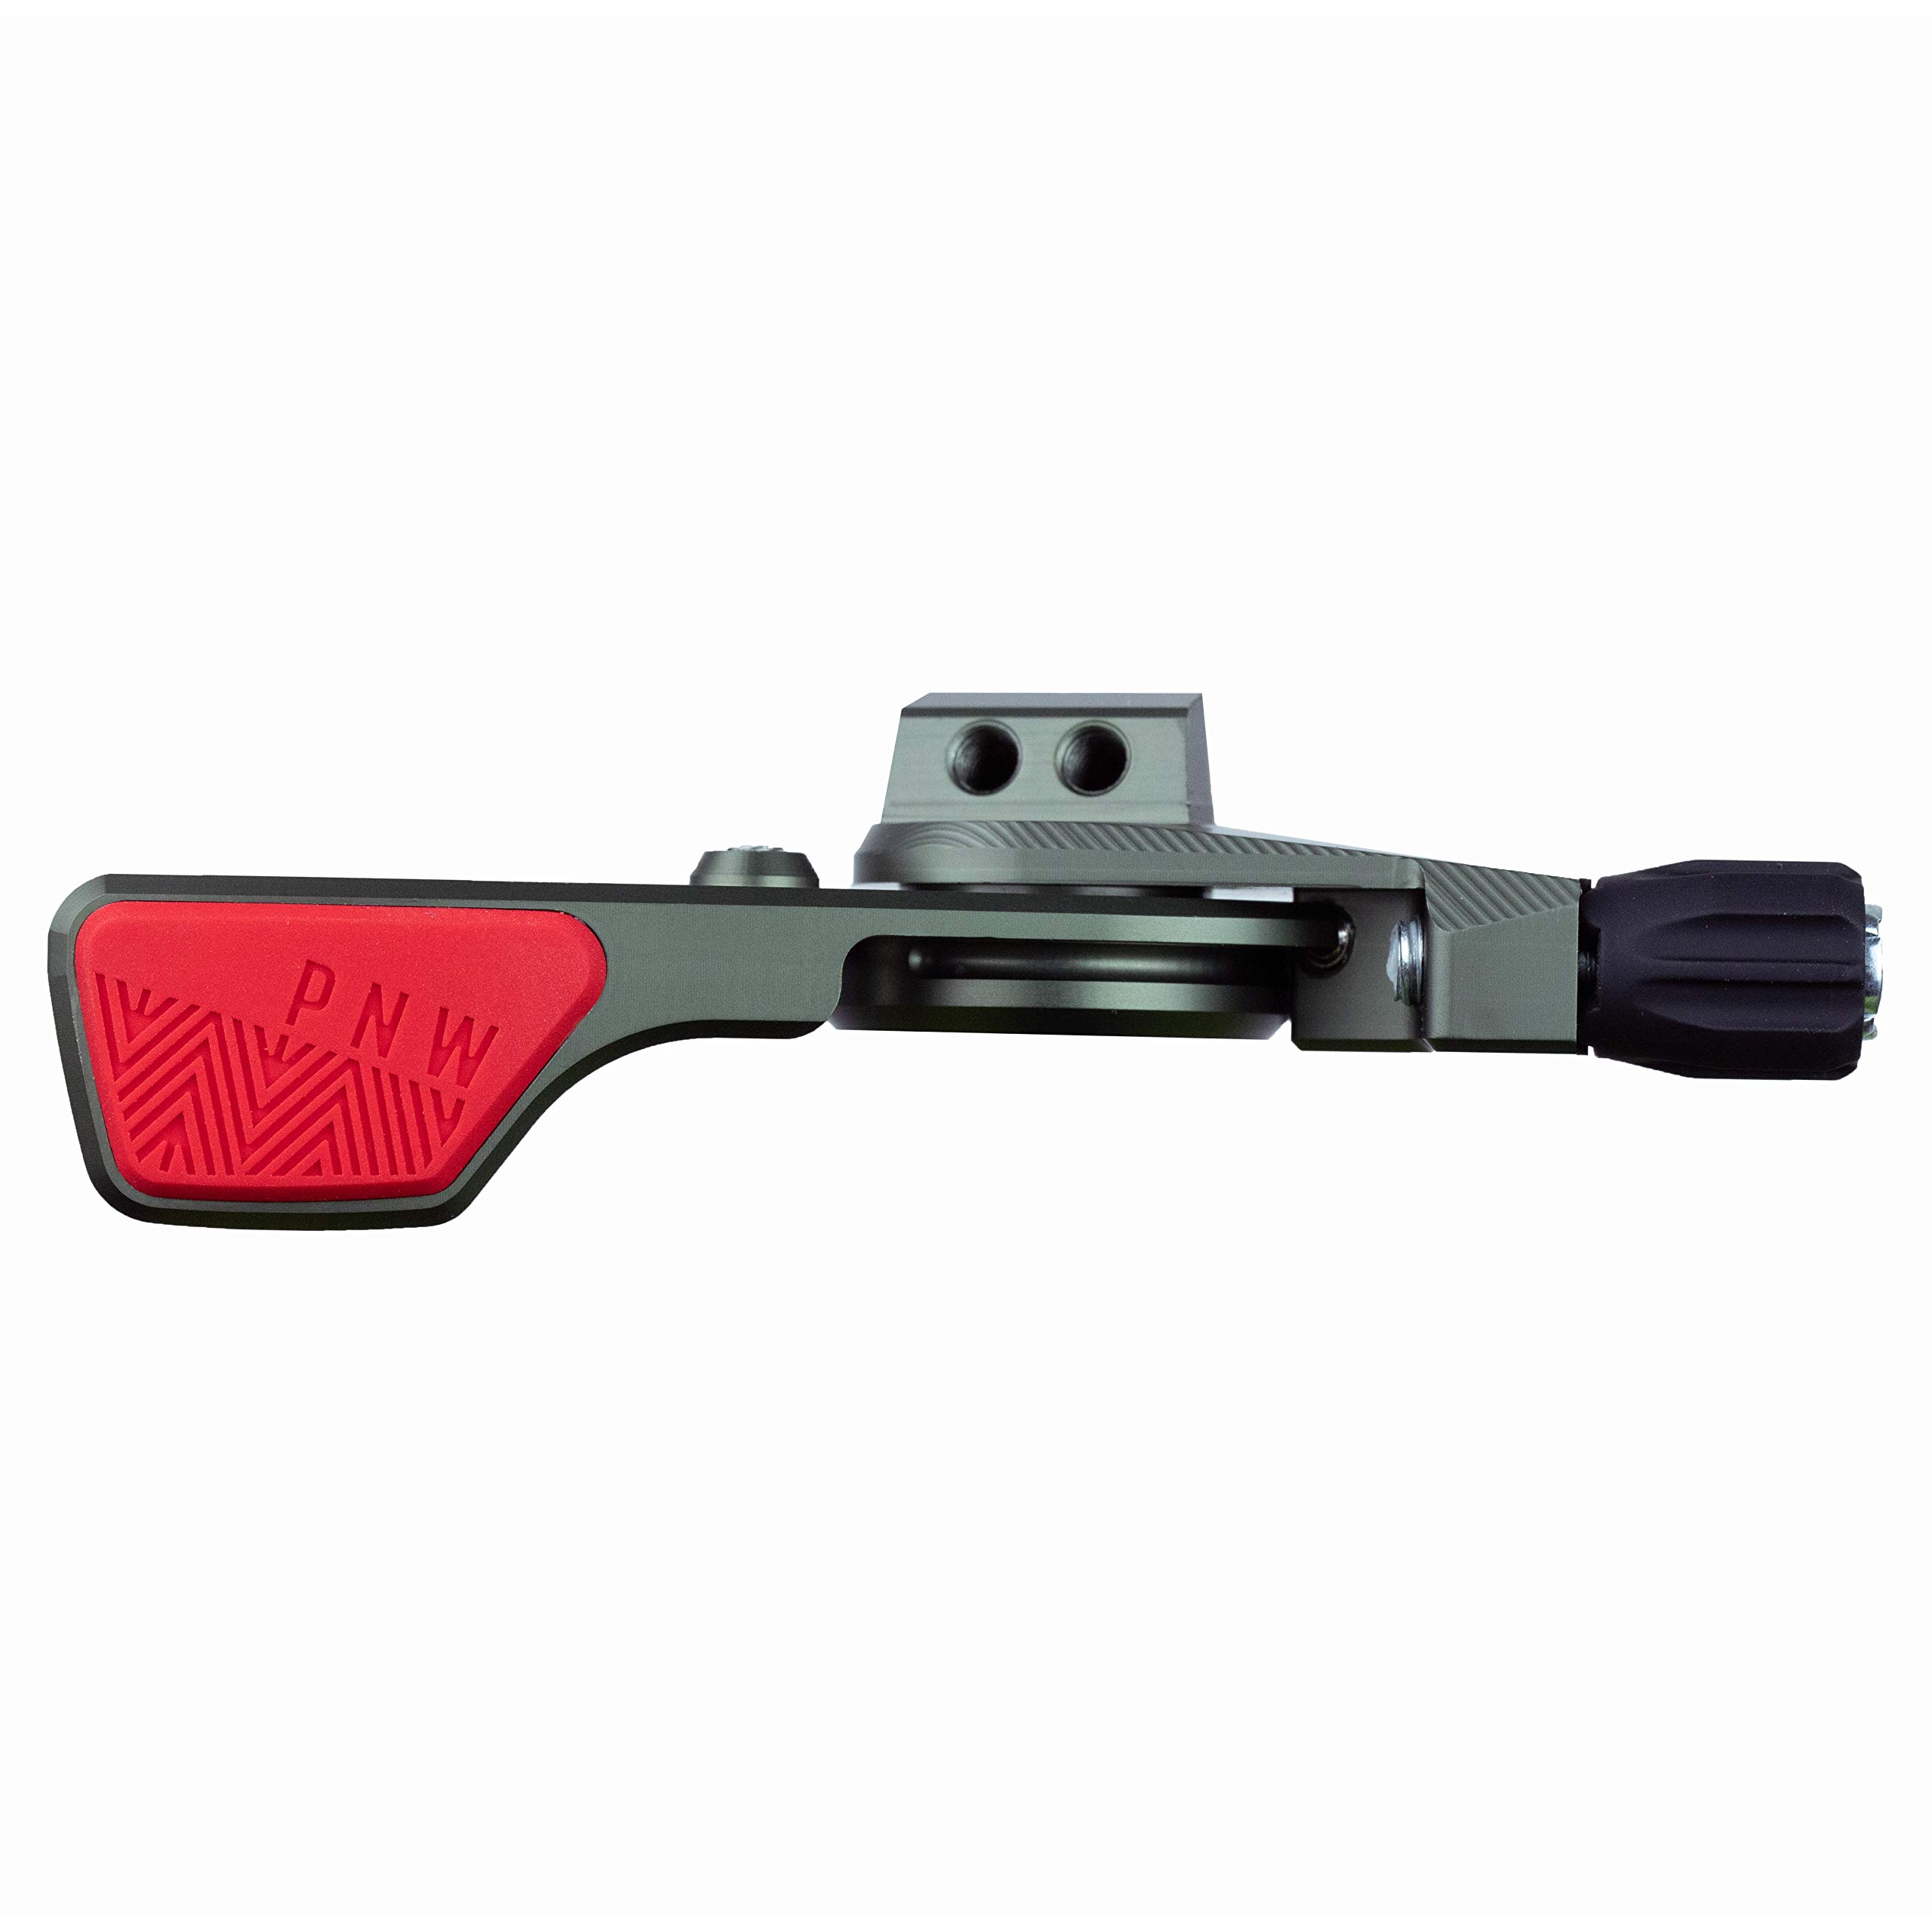 PNW Components Loam Lever Dropper Remote (Grey/Red, Matchmaker X Clamp) by PNW Components